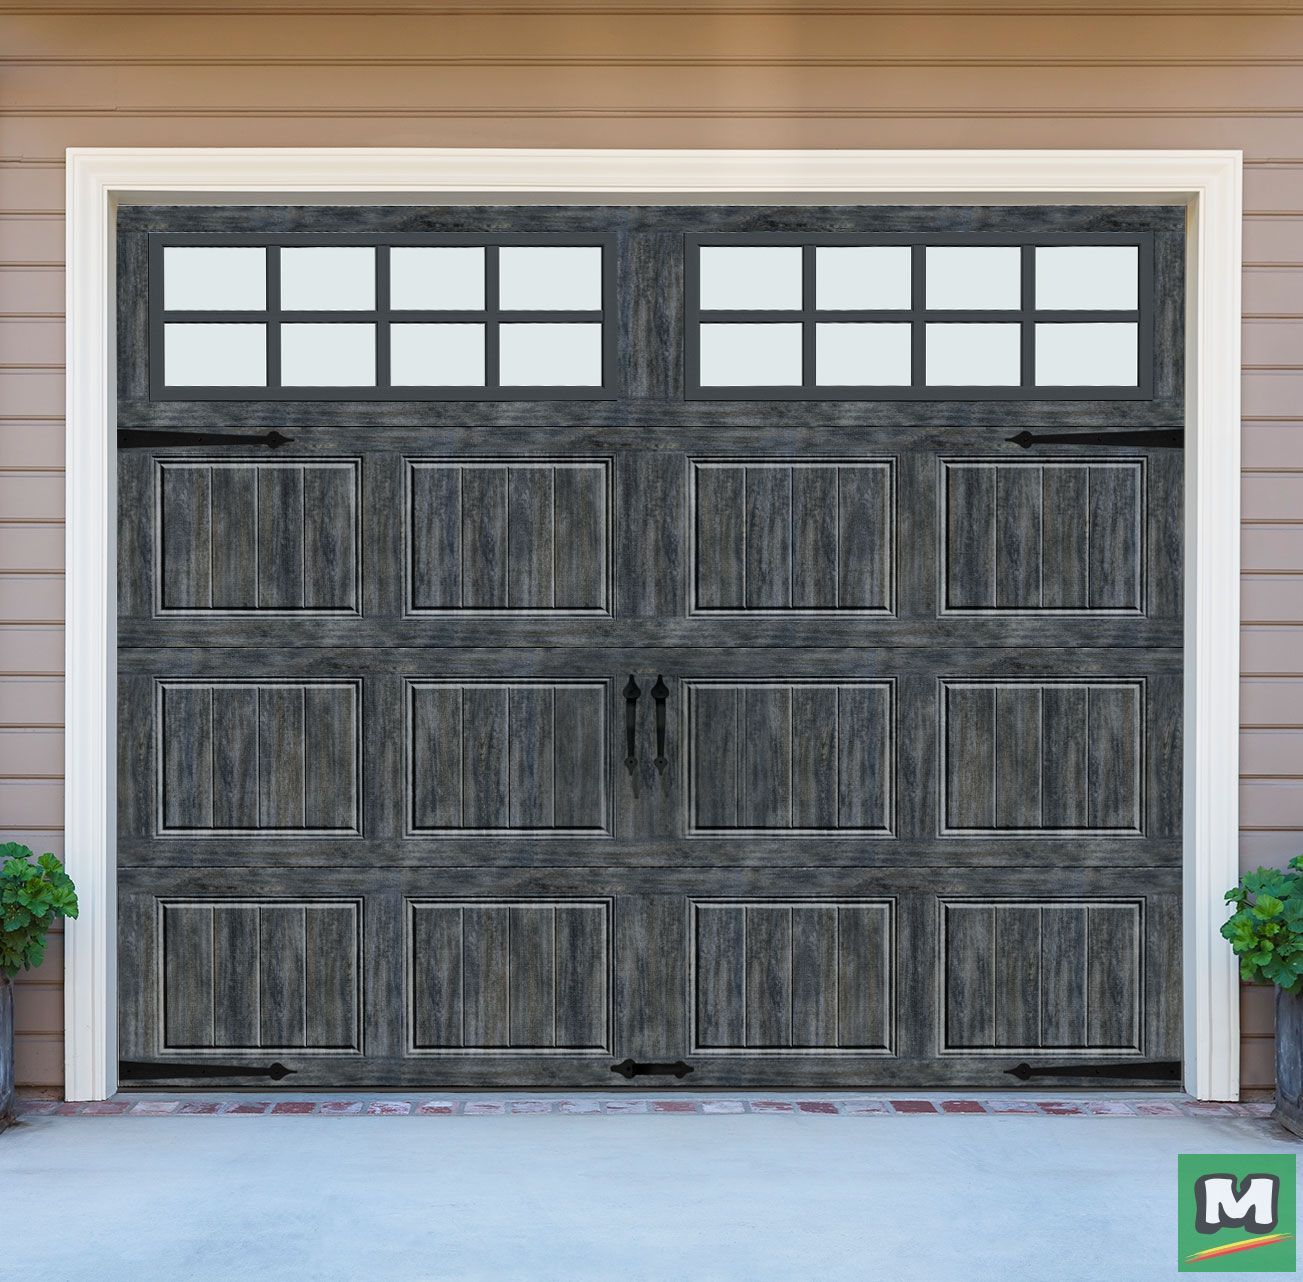 Up Your Curb Appeal With An Ideal Door Designer Series Steel Panel Slate Garage Door This 9 X 7 Door Features Grooved Curb Appeal Steel Panels Garage Doors